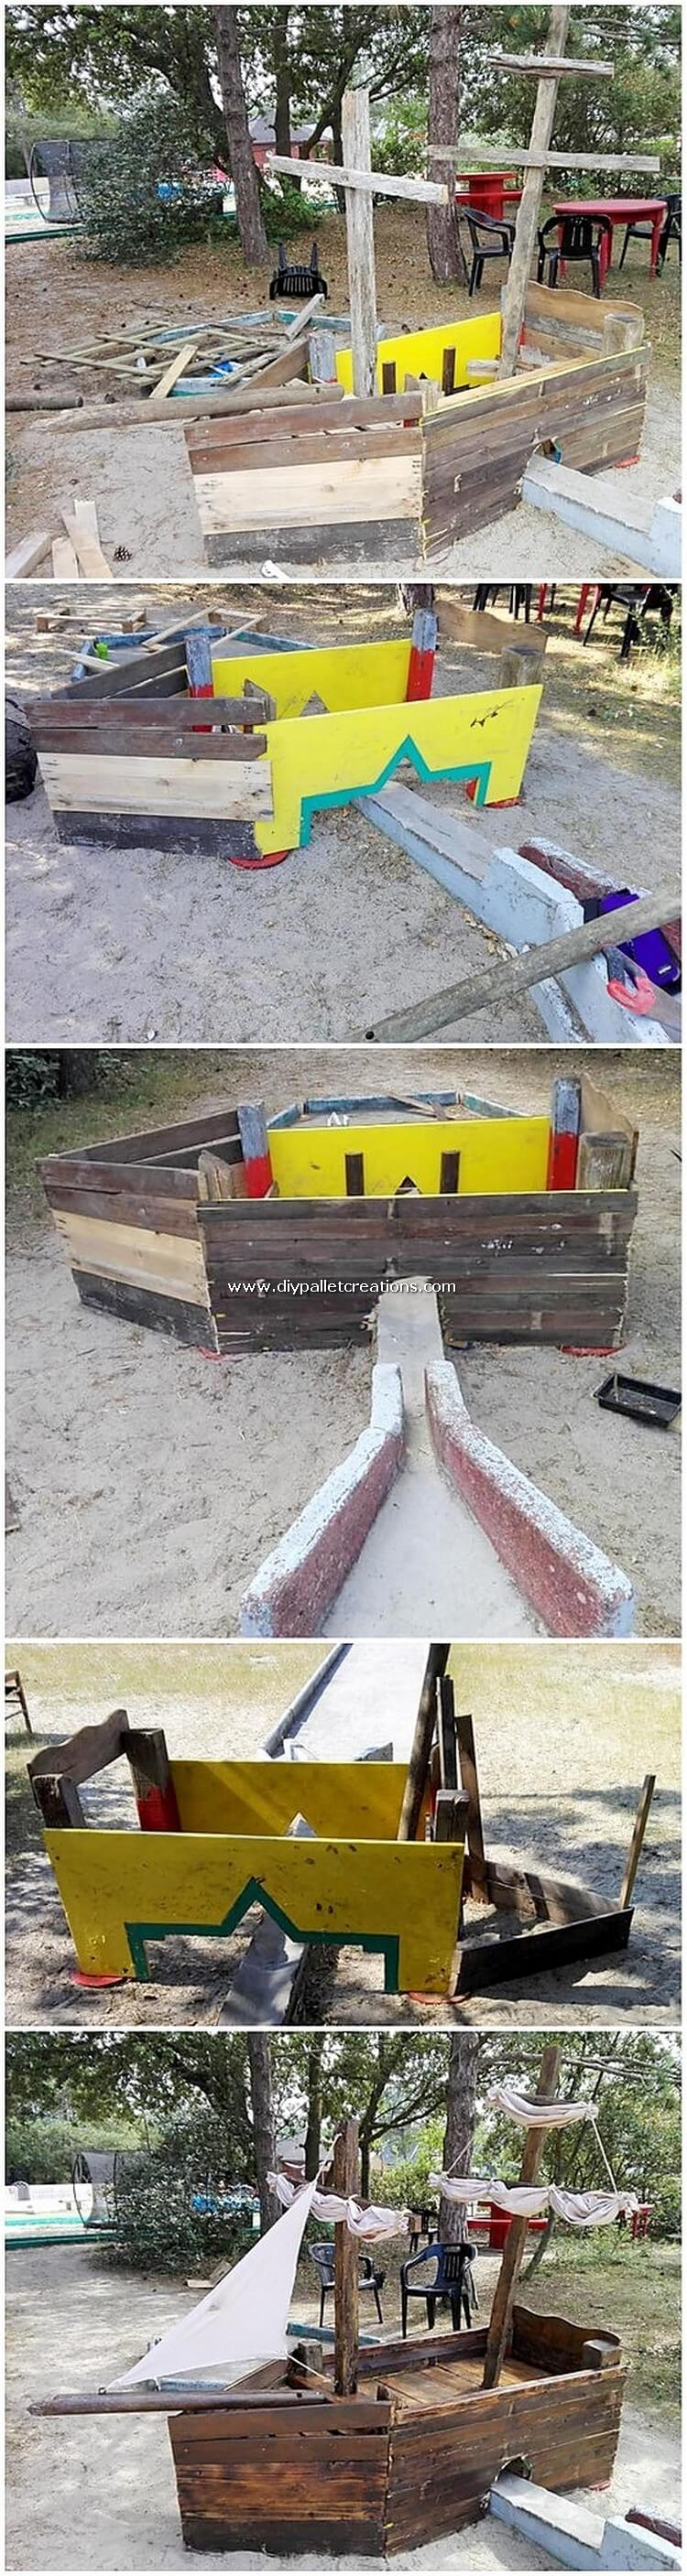 Pallet Boat for Garden Decor